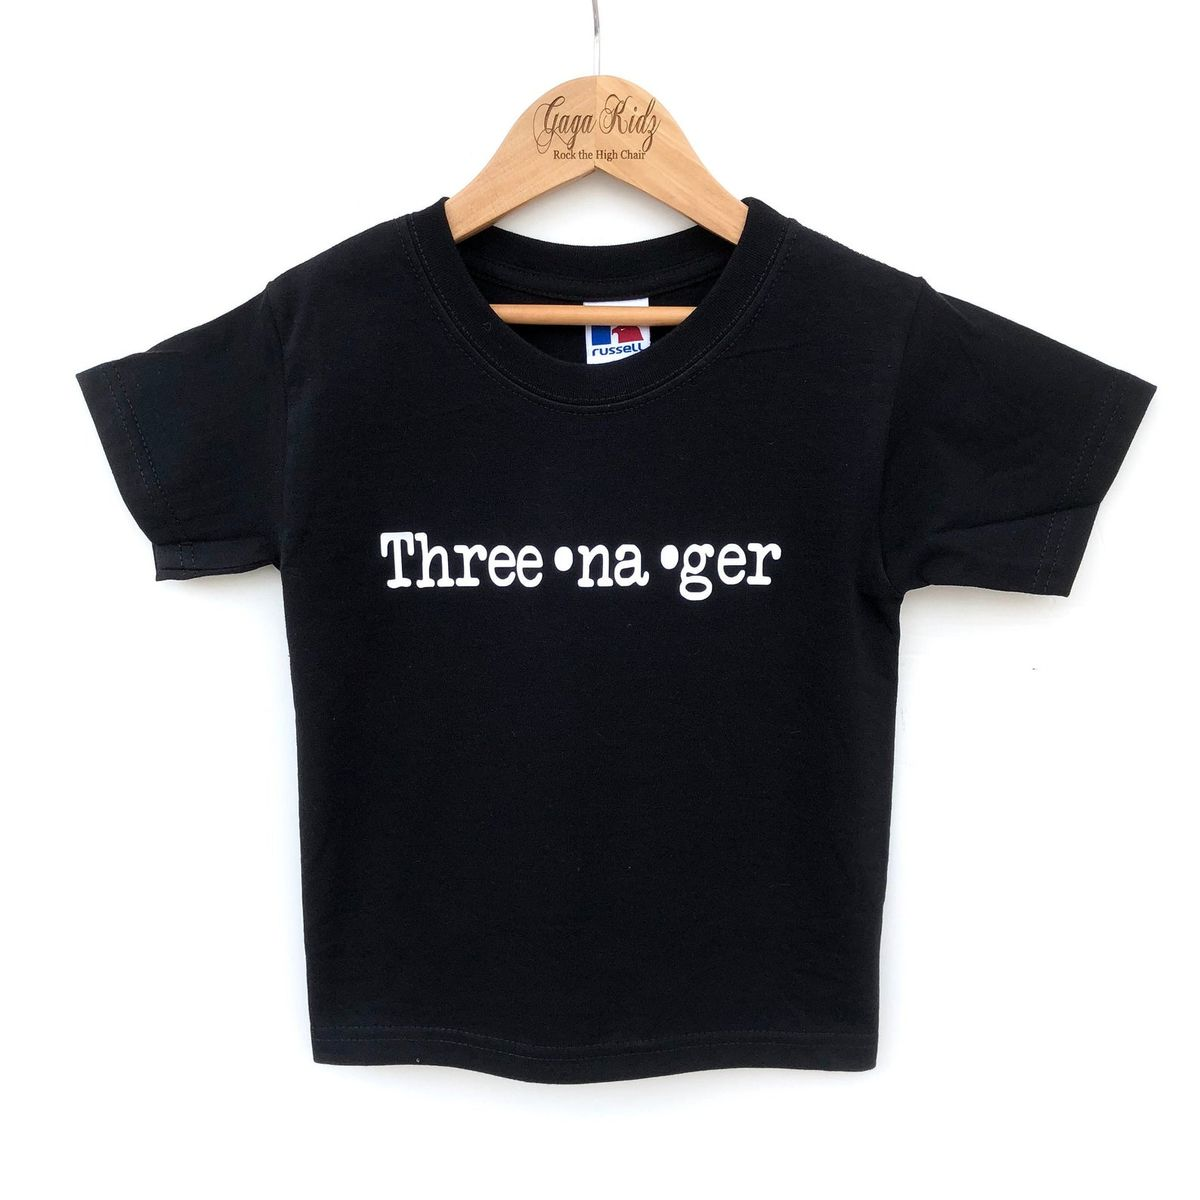 Three-na-ger Black or White T-Shirt - product images  of